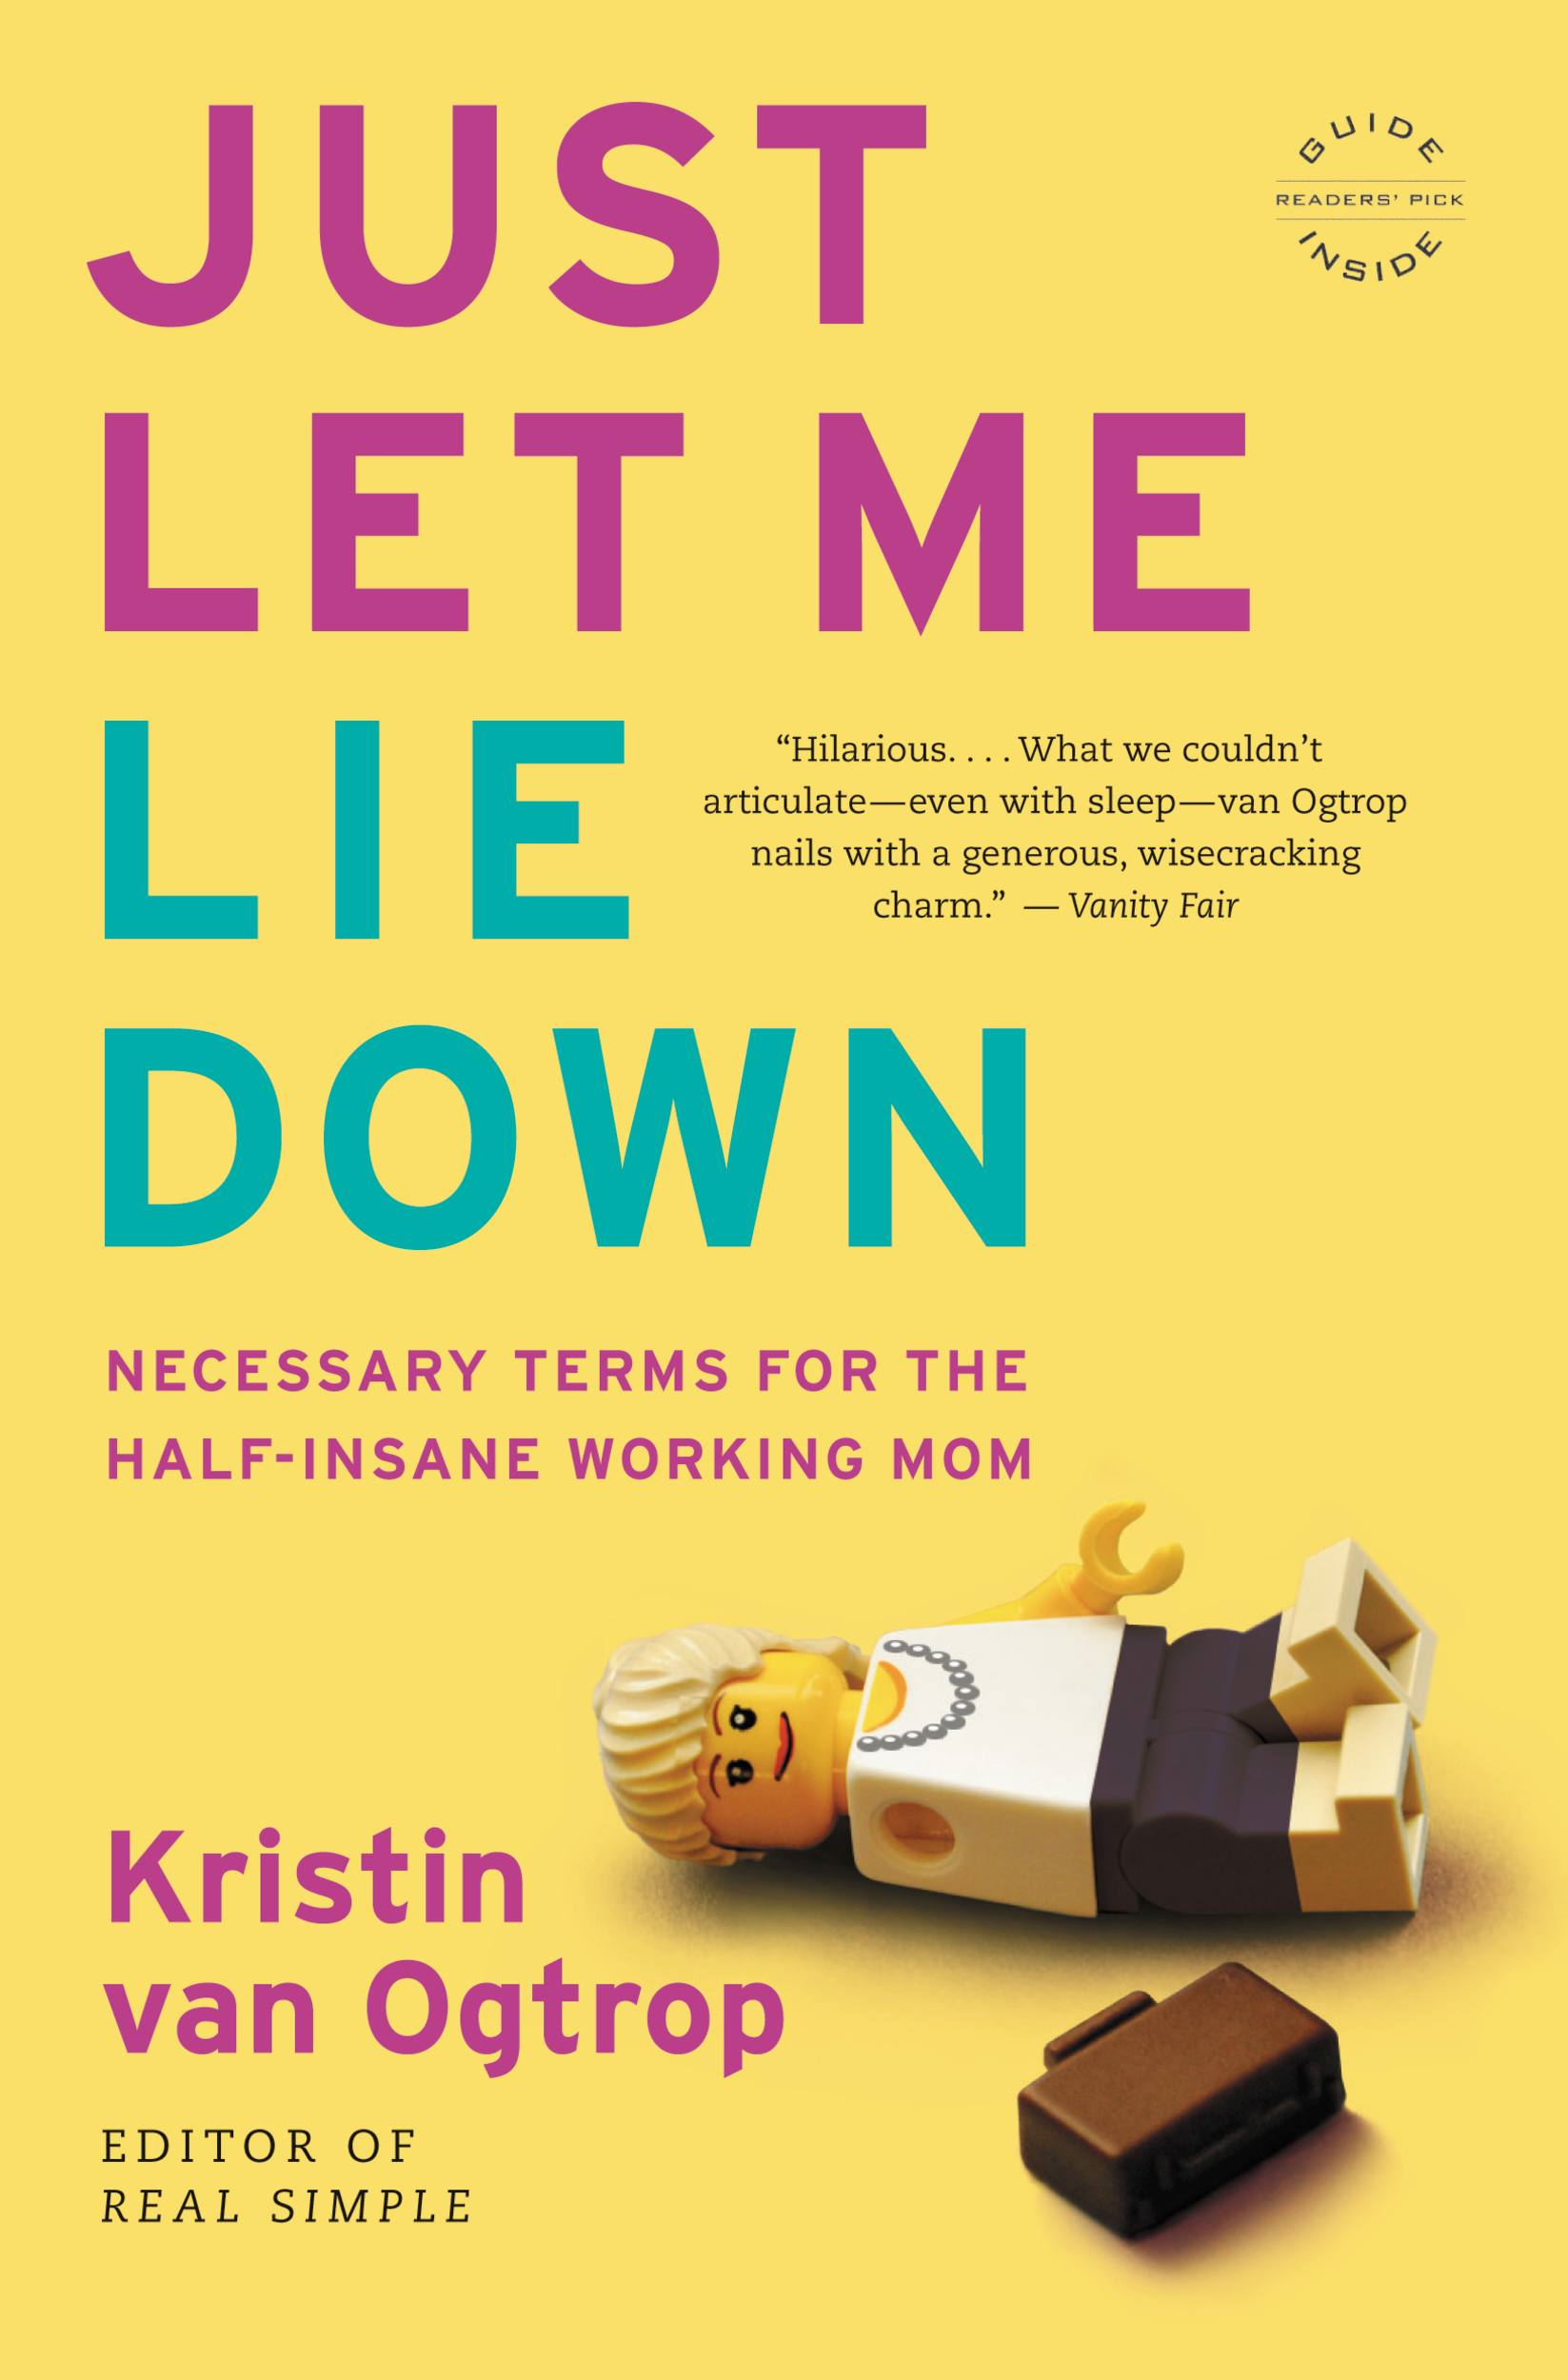 Just Let Me Lie Down By: Kristin van Ogtrop